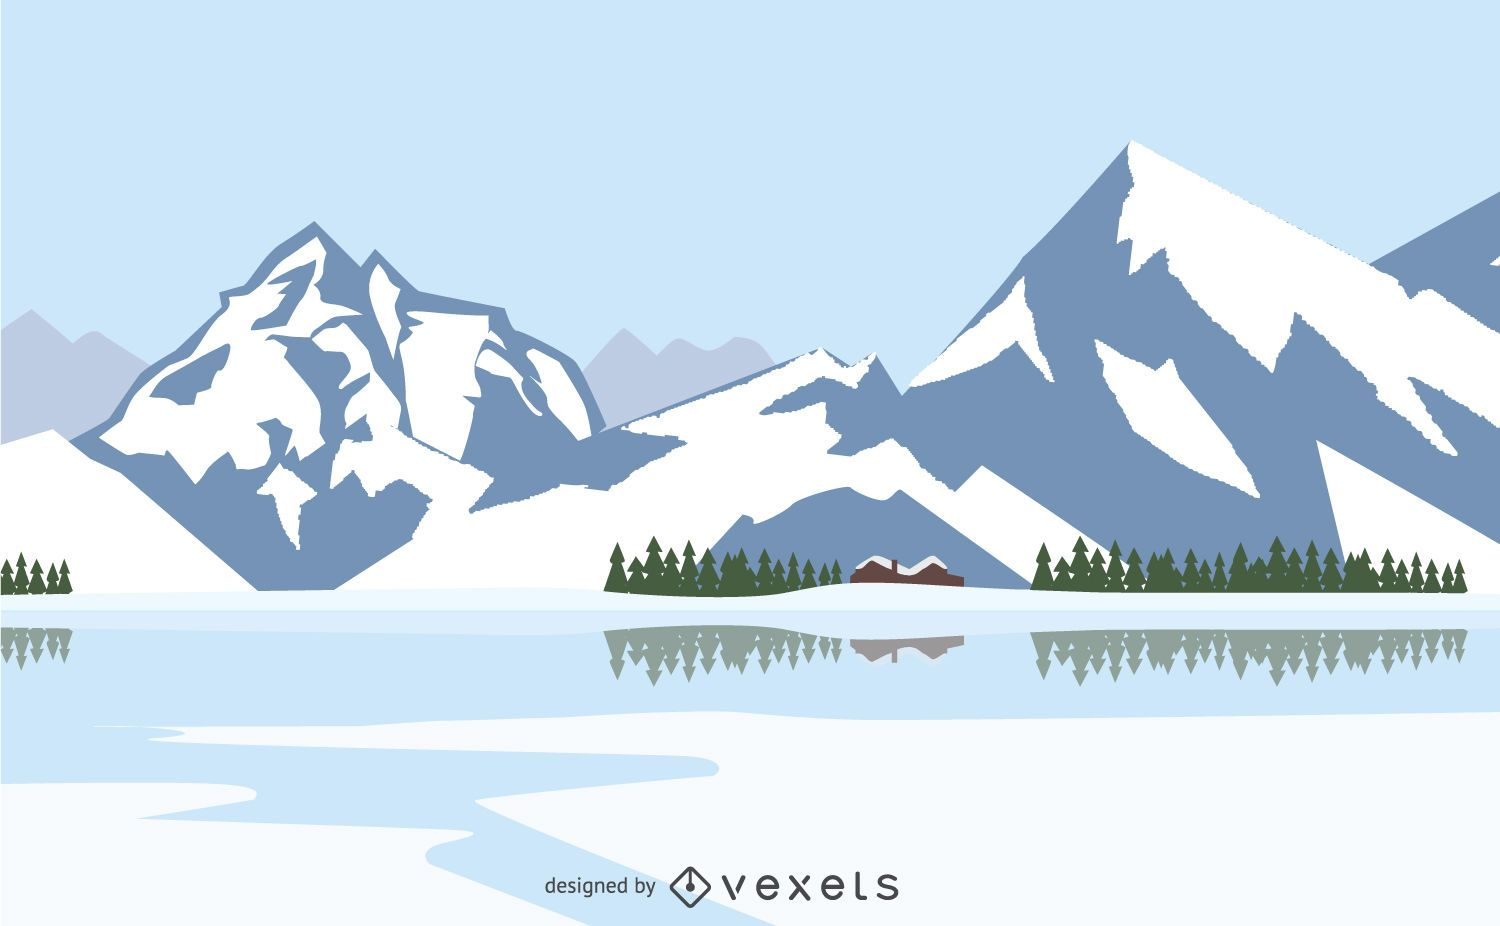 Winter landscape with snowed mountains